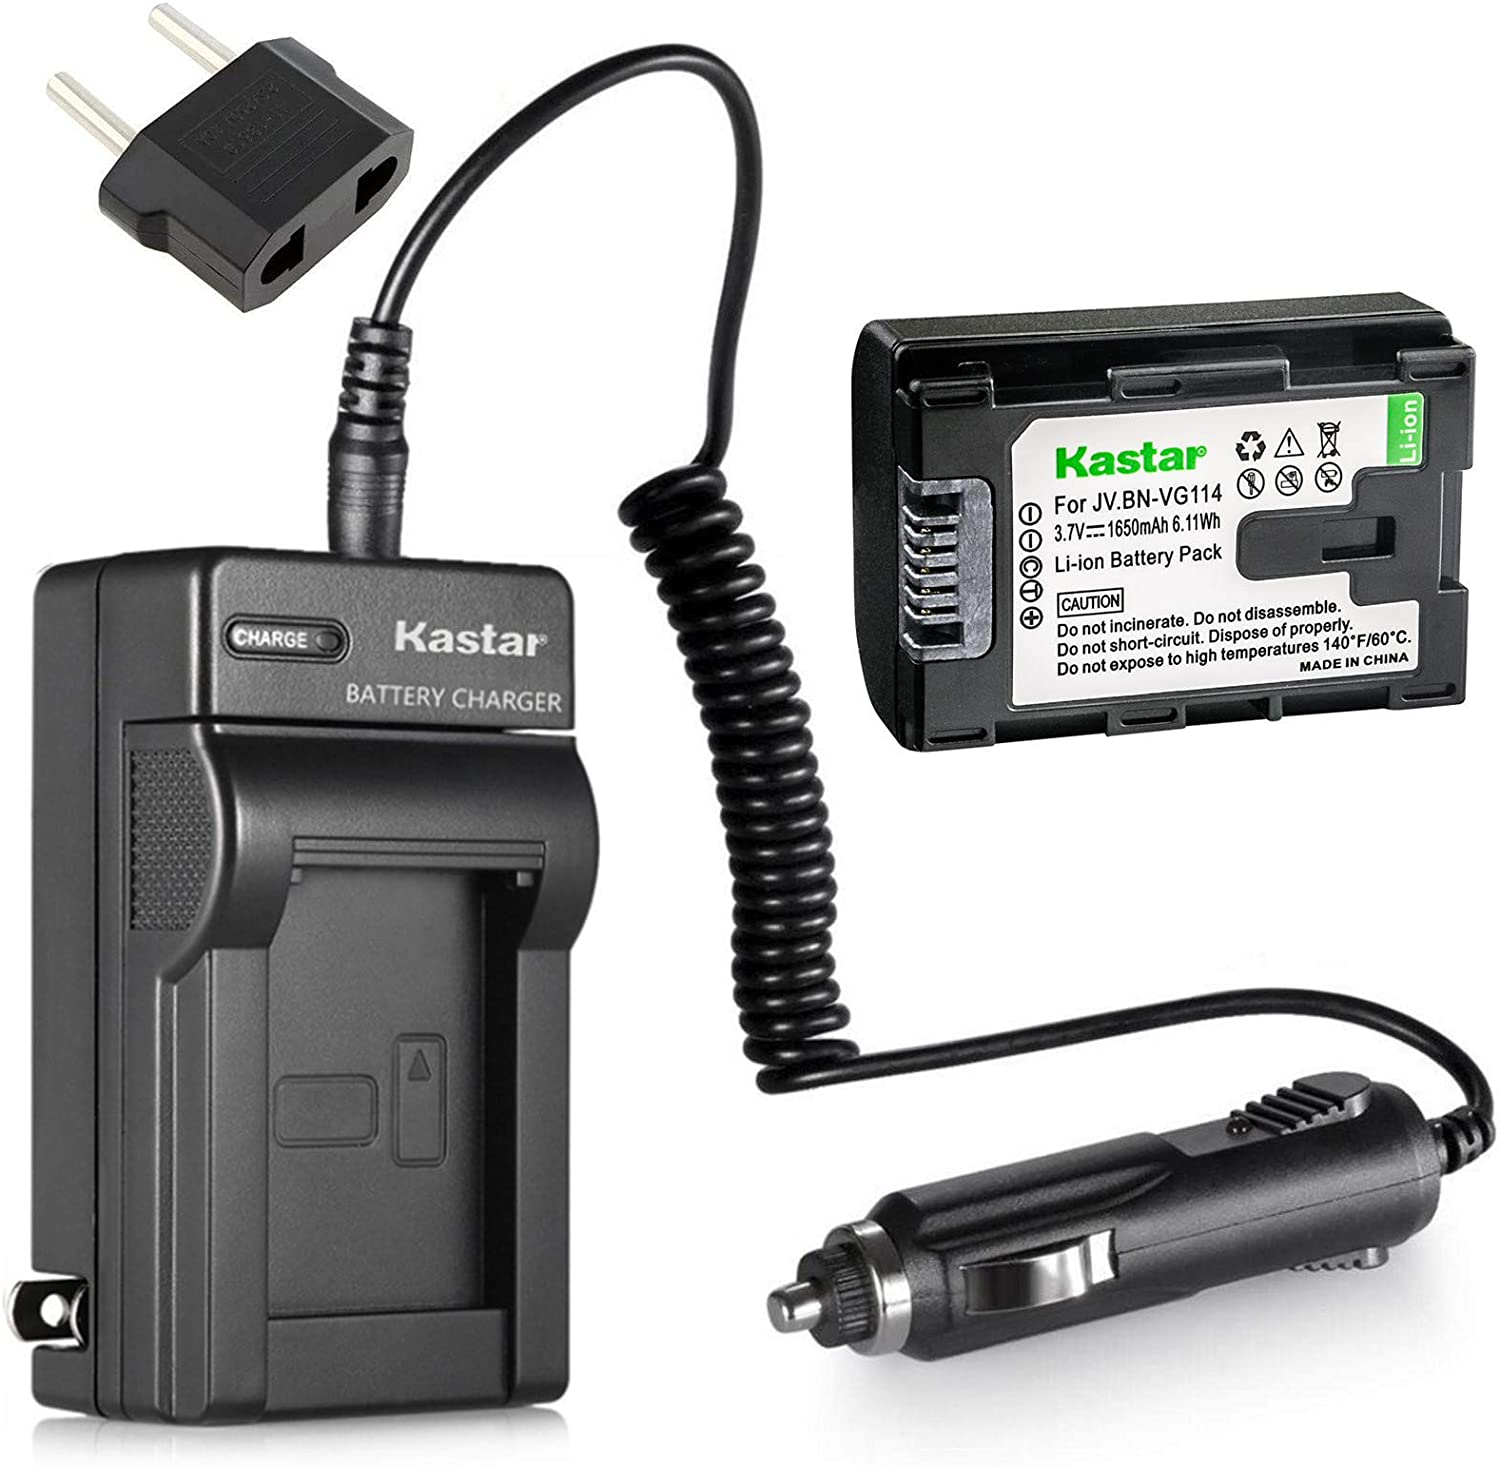 GZ-E105REK Full HD Memory Camcorder GZ-E105RE Battery 2 Pack and LCD USB Battery Charger for JVC Everio GZ-E105